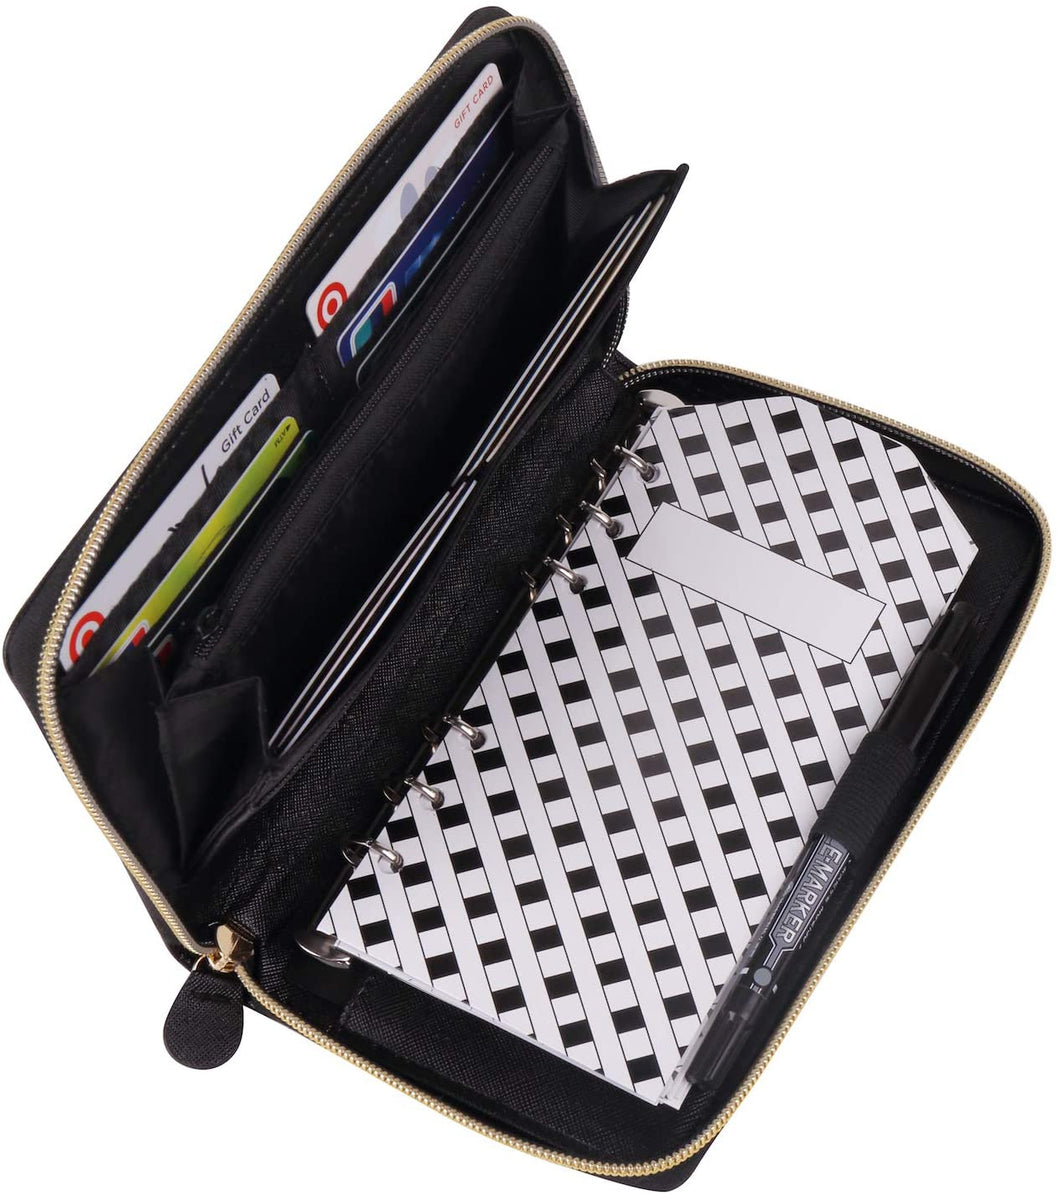 All-in-One Cash Envelopes Wallet with 12 Budget Envelopes & Budget Sheets - Black